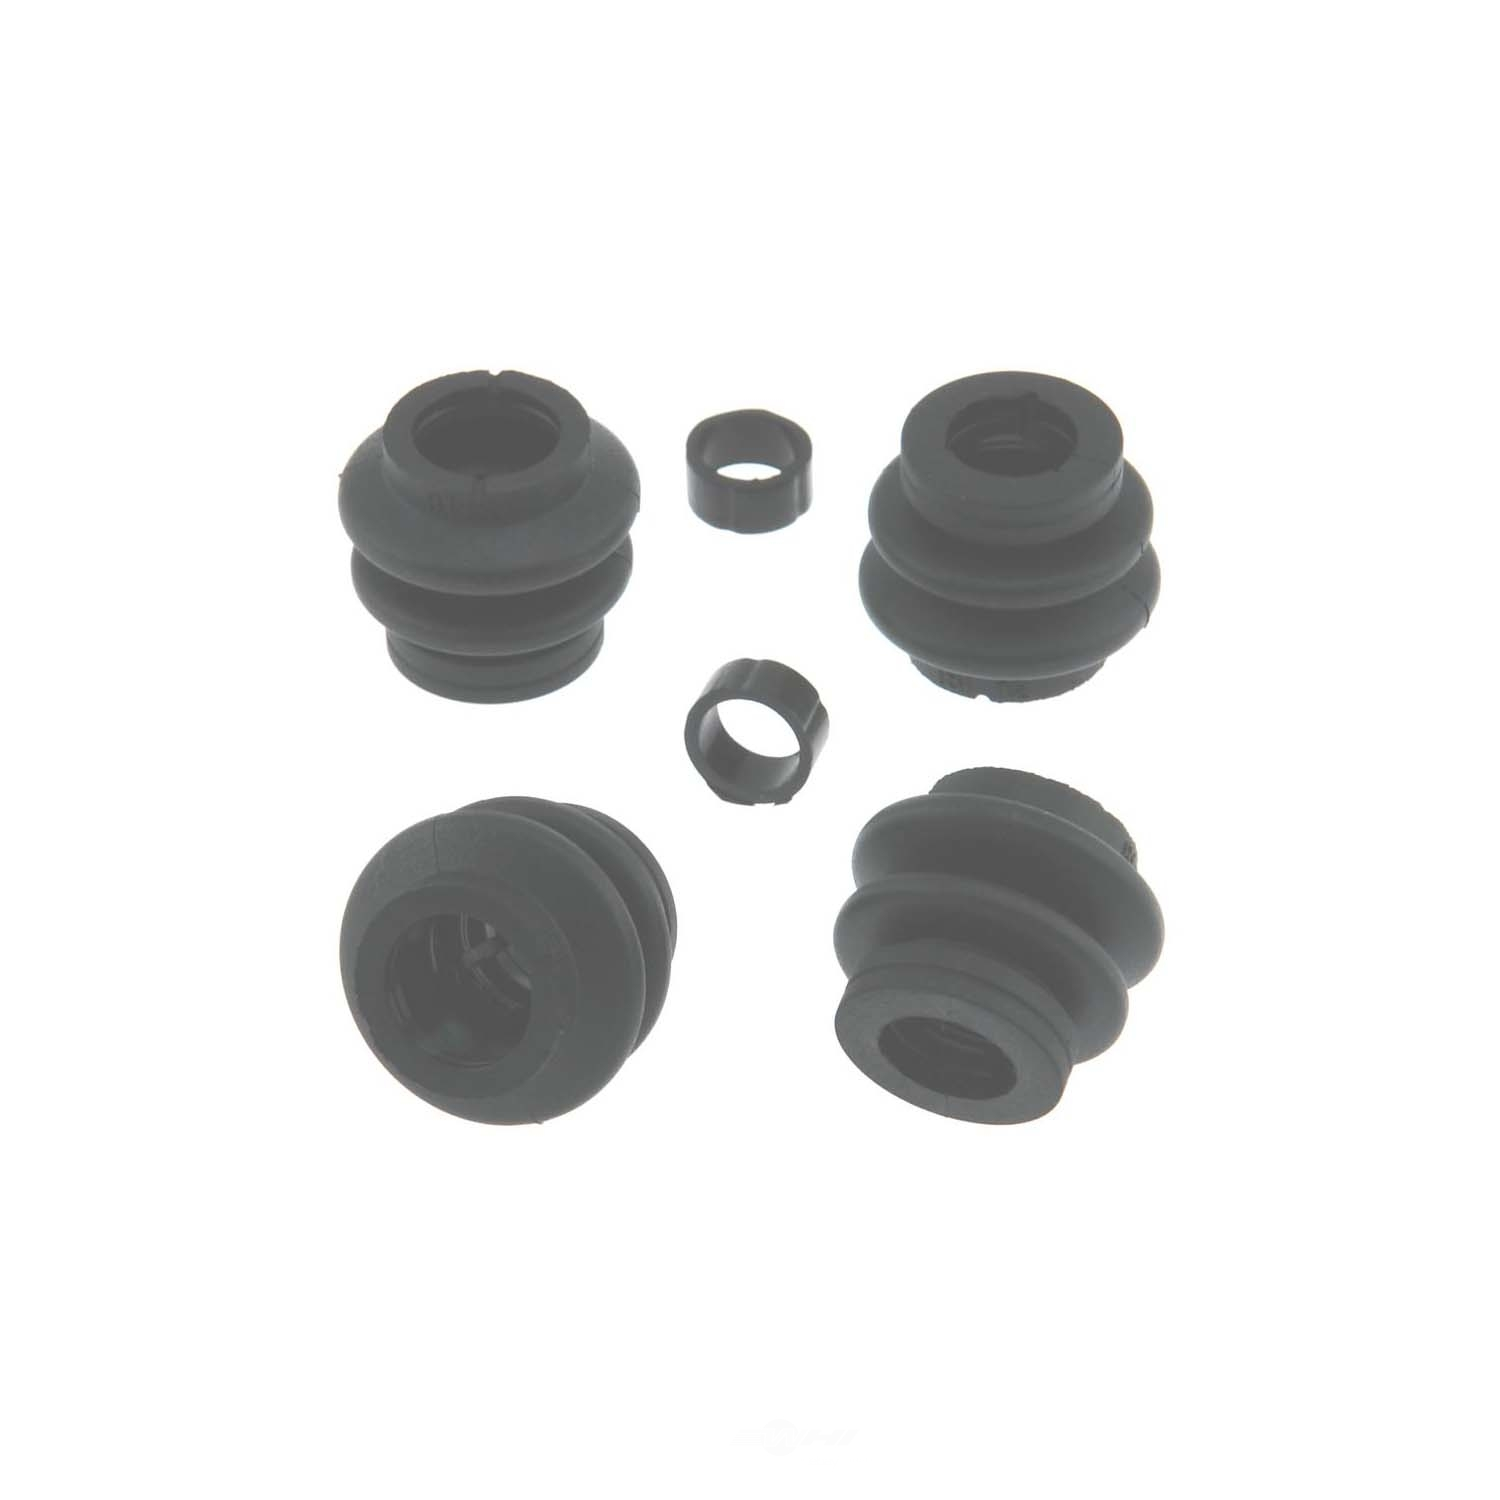 CARLSON QUALITY BRAKE PARTS - Disc Brake Caliper Guide Pin Boot Kit (Front) - CRL 16153